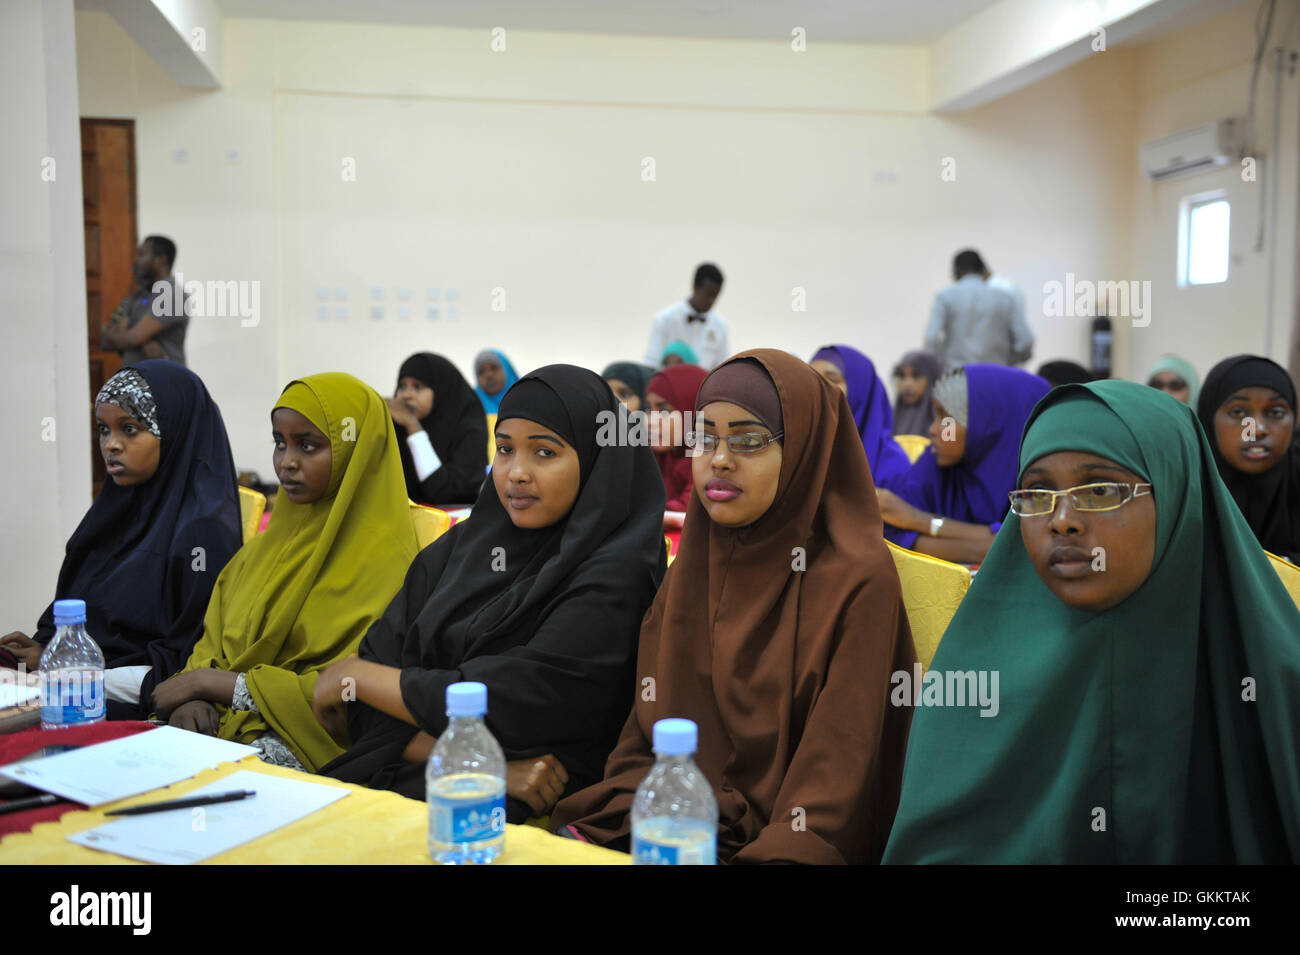 Round table discussion students - Stock Photo University Students Attend A Roundtable Discussion On Somali Women S Leadership Roles In Peace Building Initiatives And Mentoring On Equal